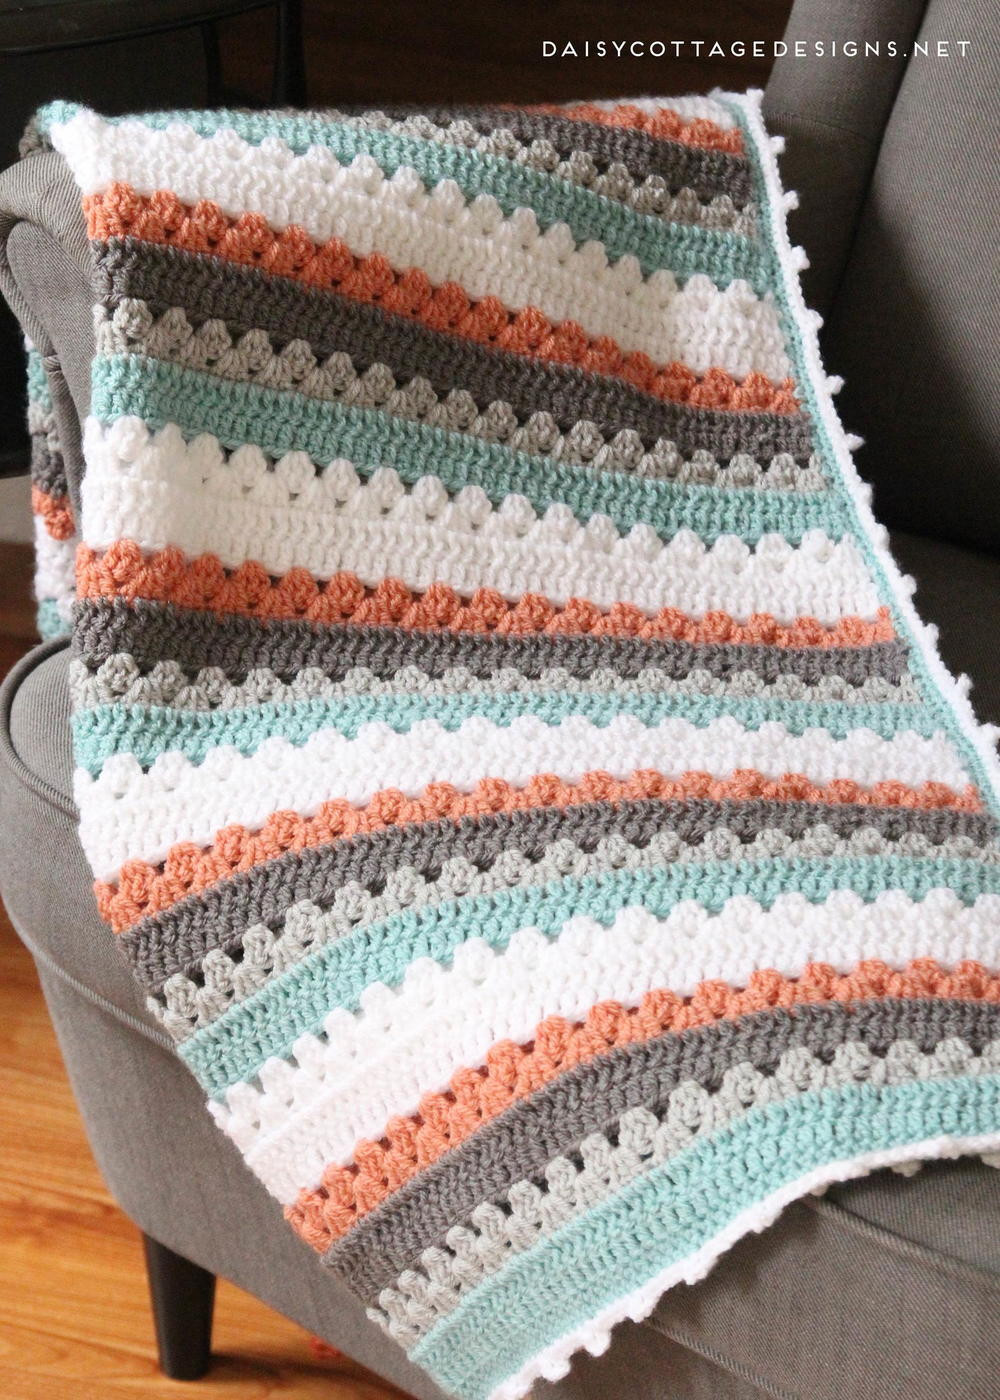 Striped Crochet Baby Blanket Inspirational Quick and Simple Striped Baby Blanket Pattern Of Amazing 50 Photos Striped Crochet Baby Blanket